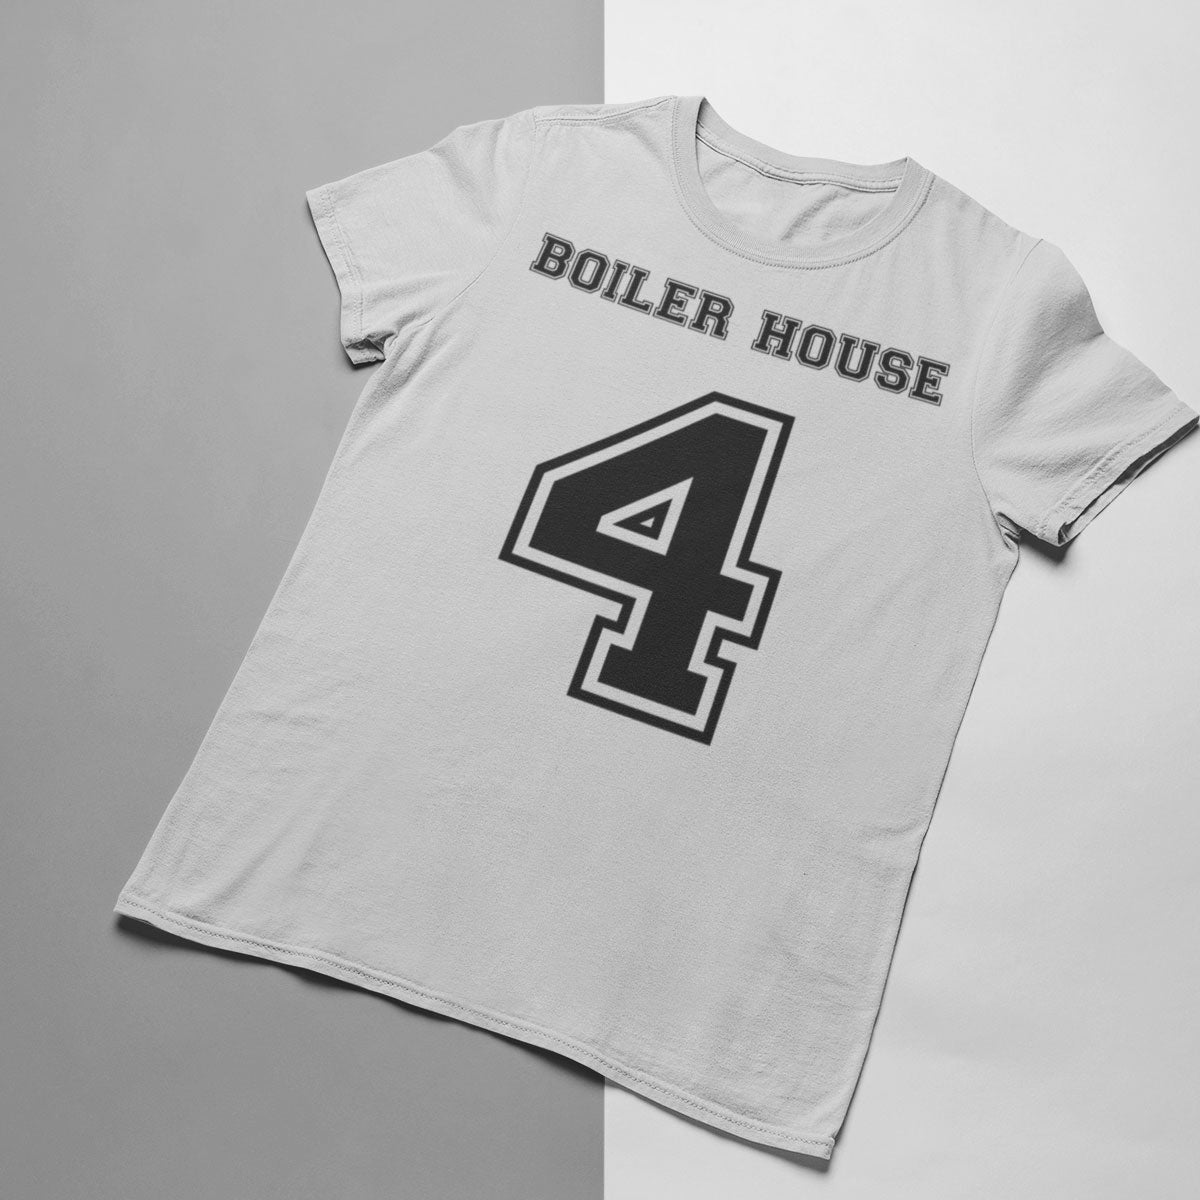 Boiler House Number 4 Rugby Tee - First XV rugbystuff.com